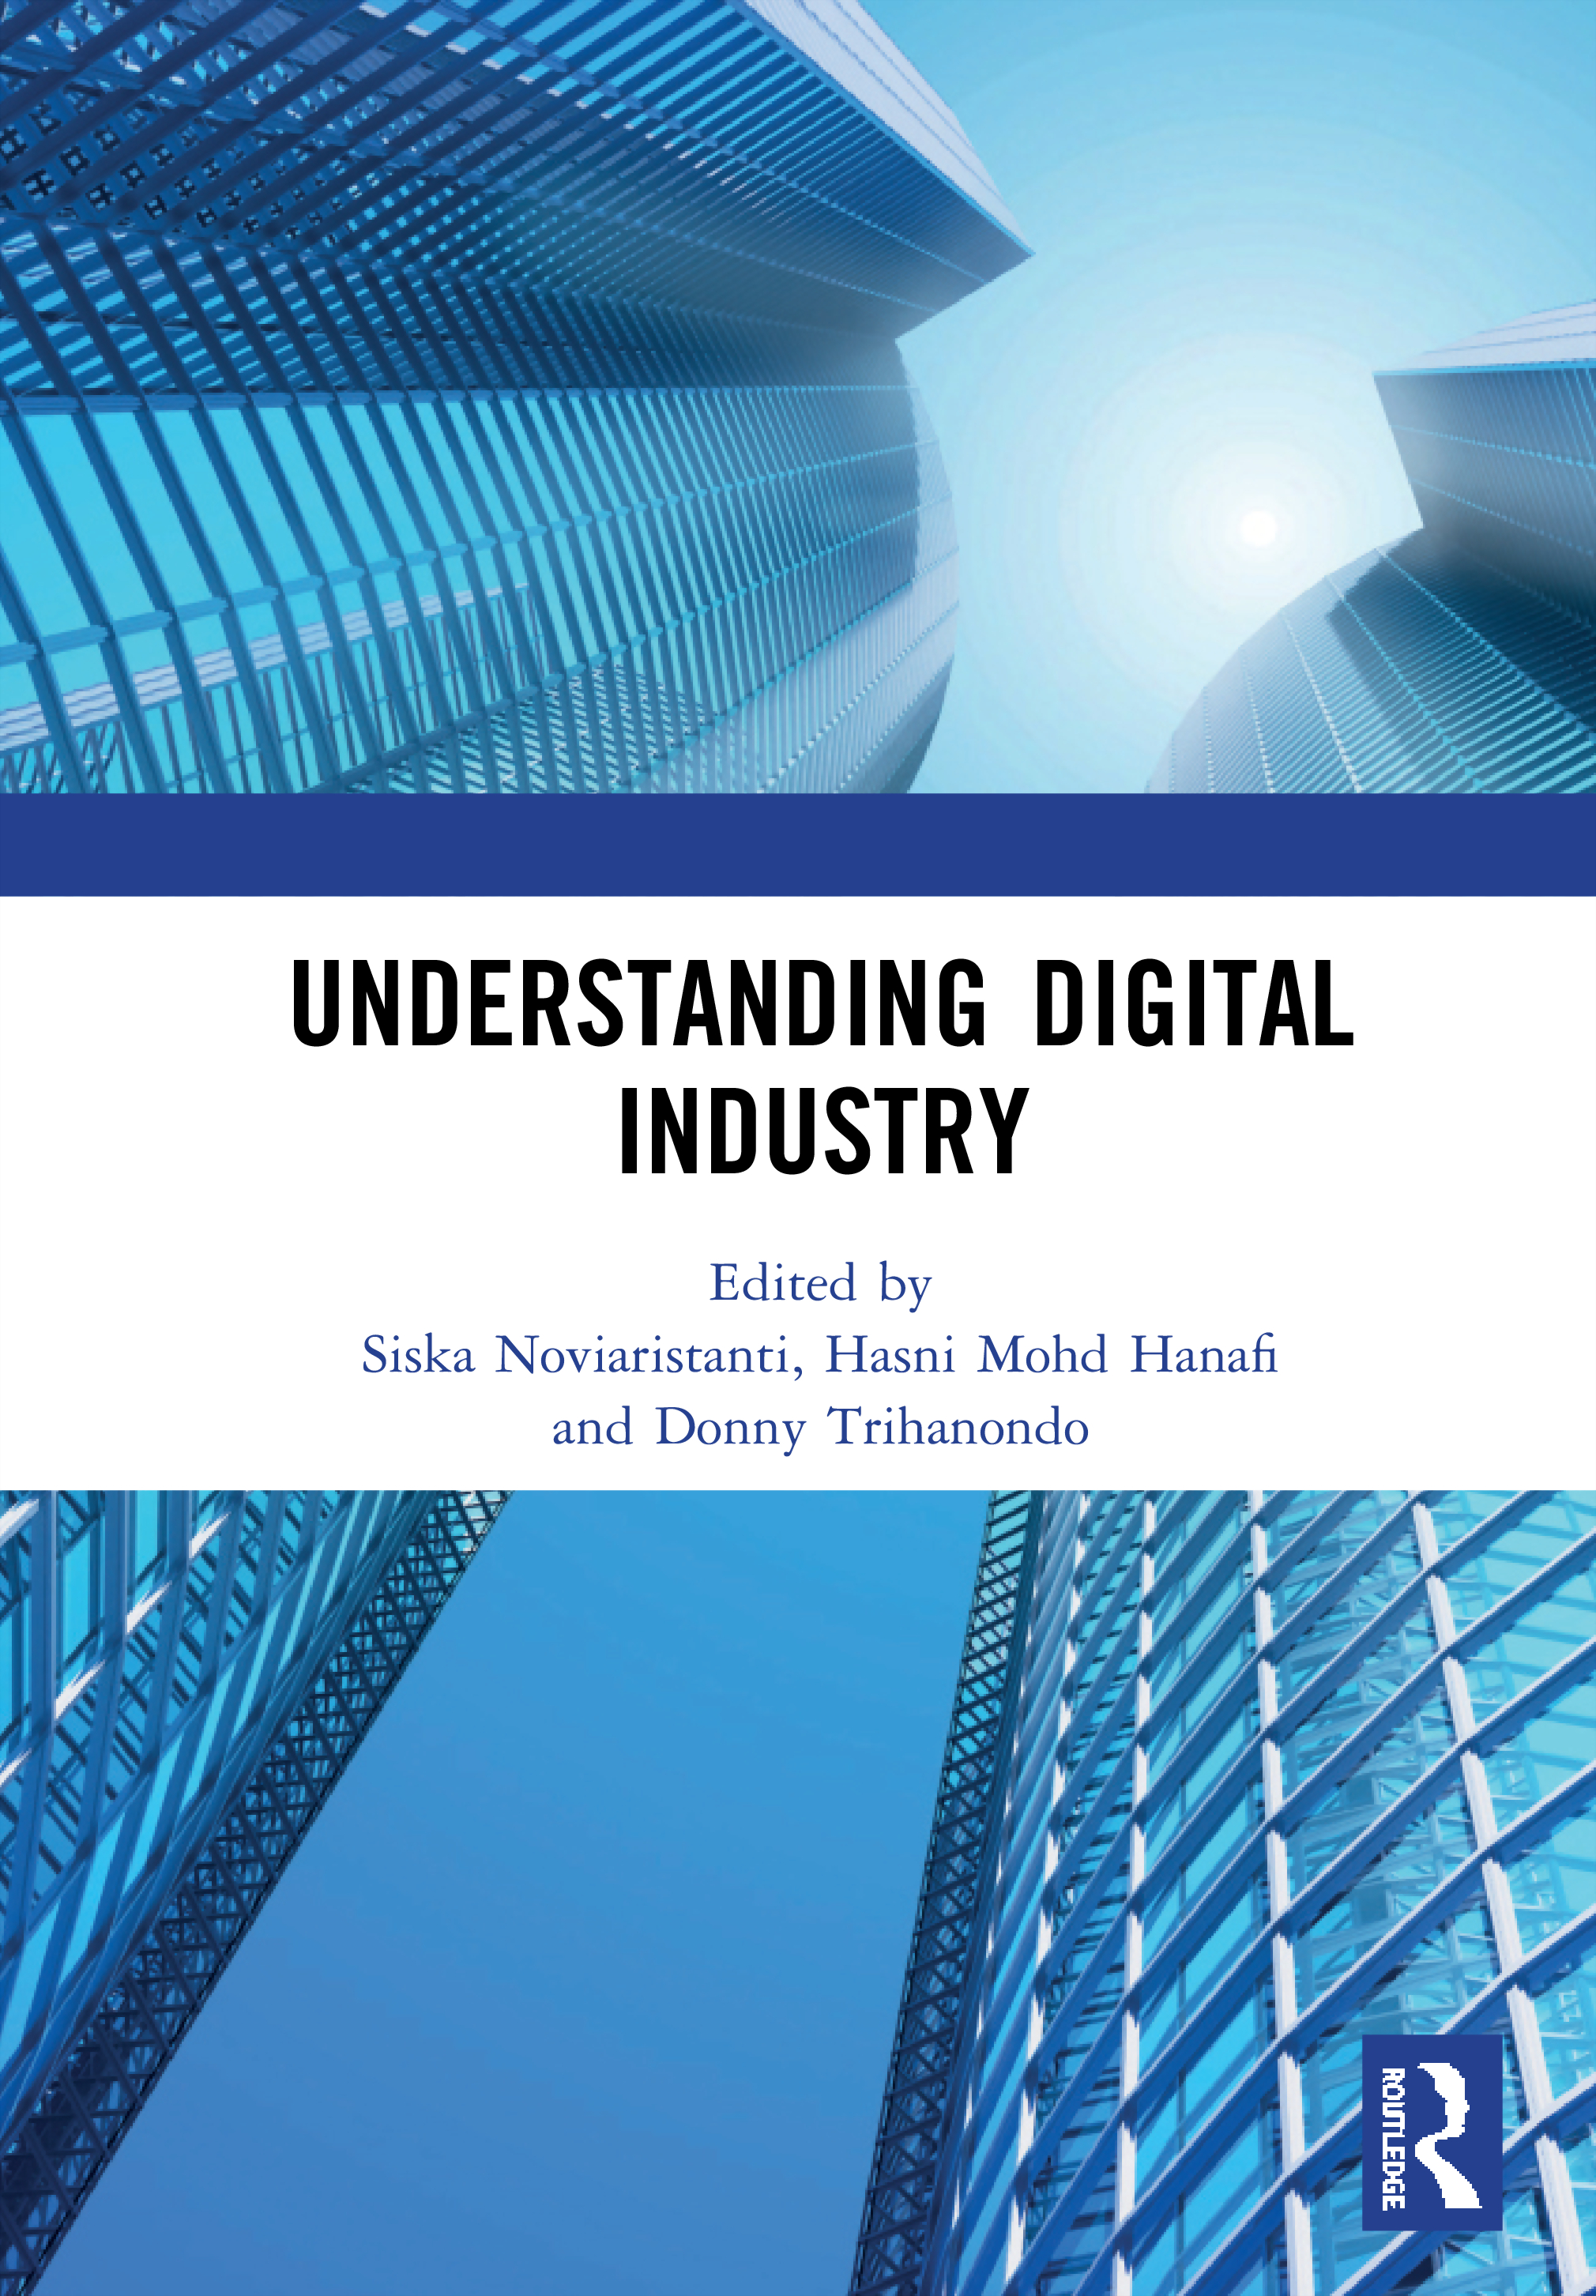 Understanding Digital Industry: Proceedings of the Conference on Managing Digital Industry, Technology and Entrepreneurship (CoMDITE 2019), July 10-11, 2019, Bandung, Indonesia, 1st Edition (Hardback) book cover